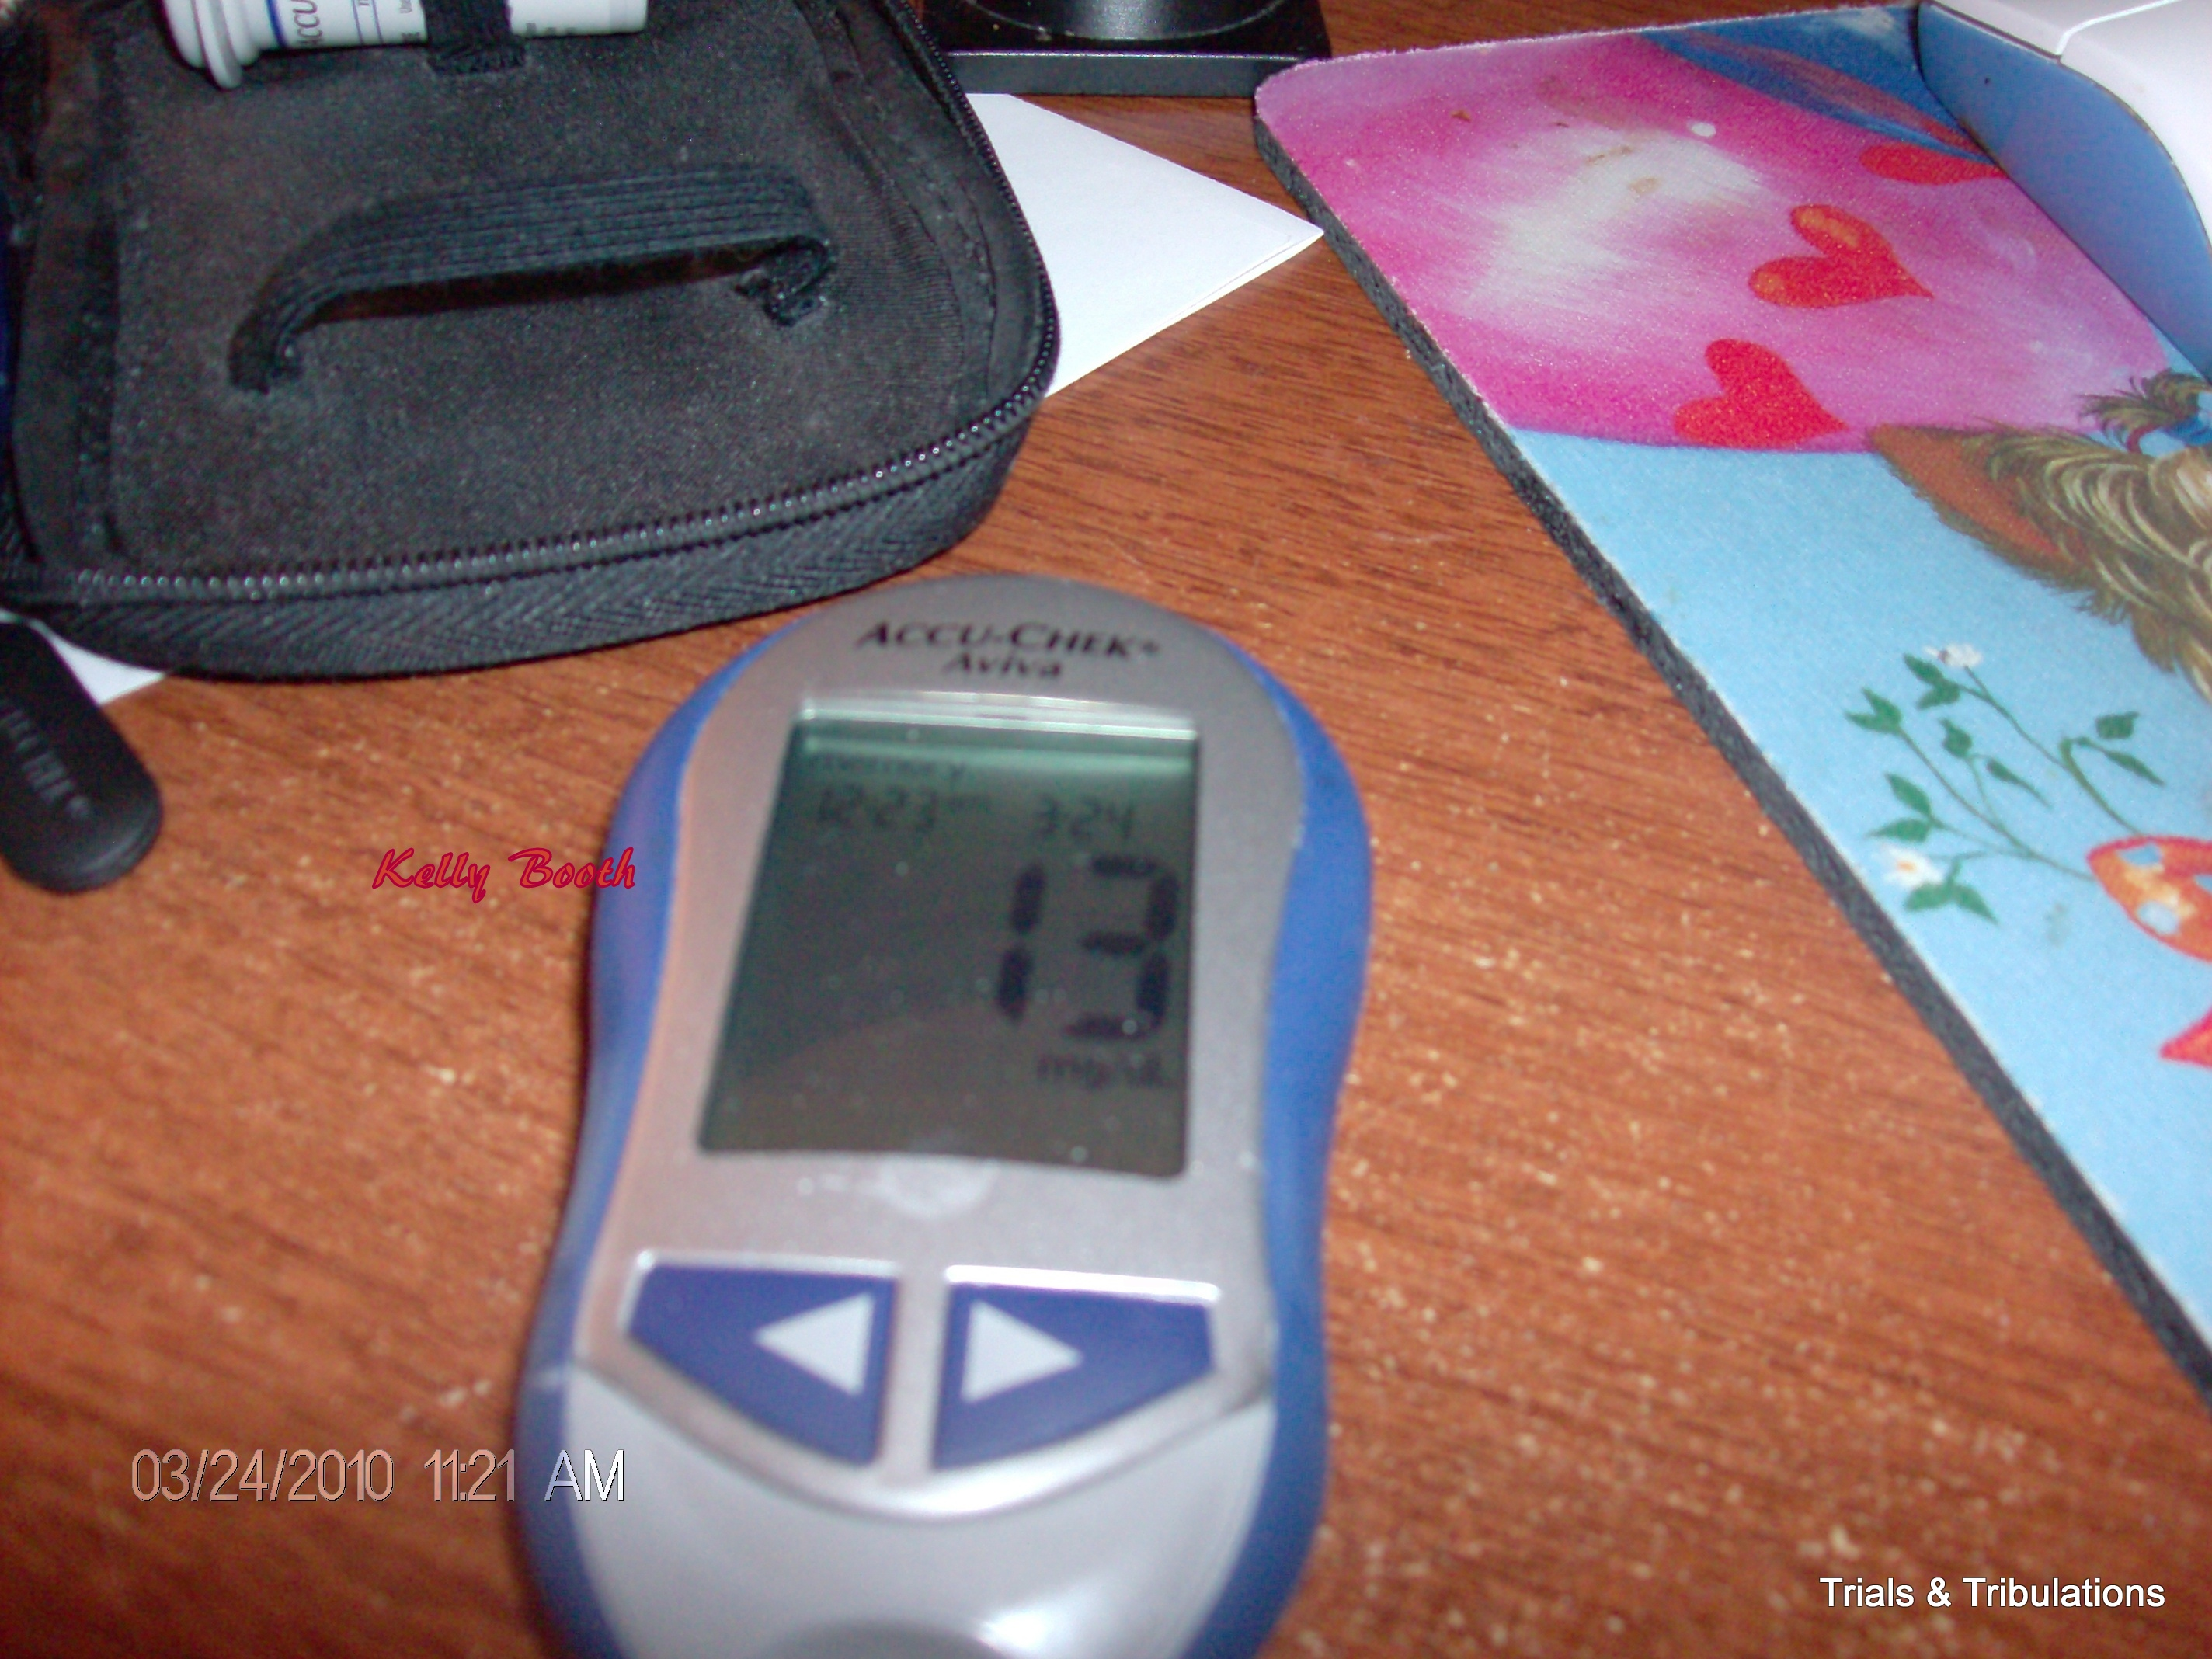 picture of Aviva meter with blood sugar of 13